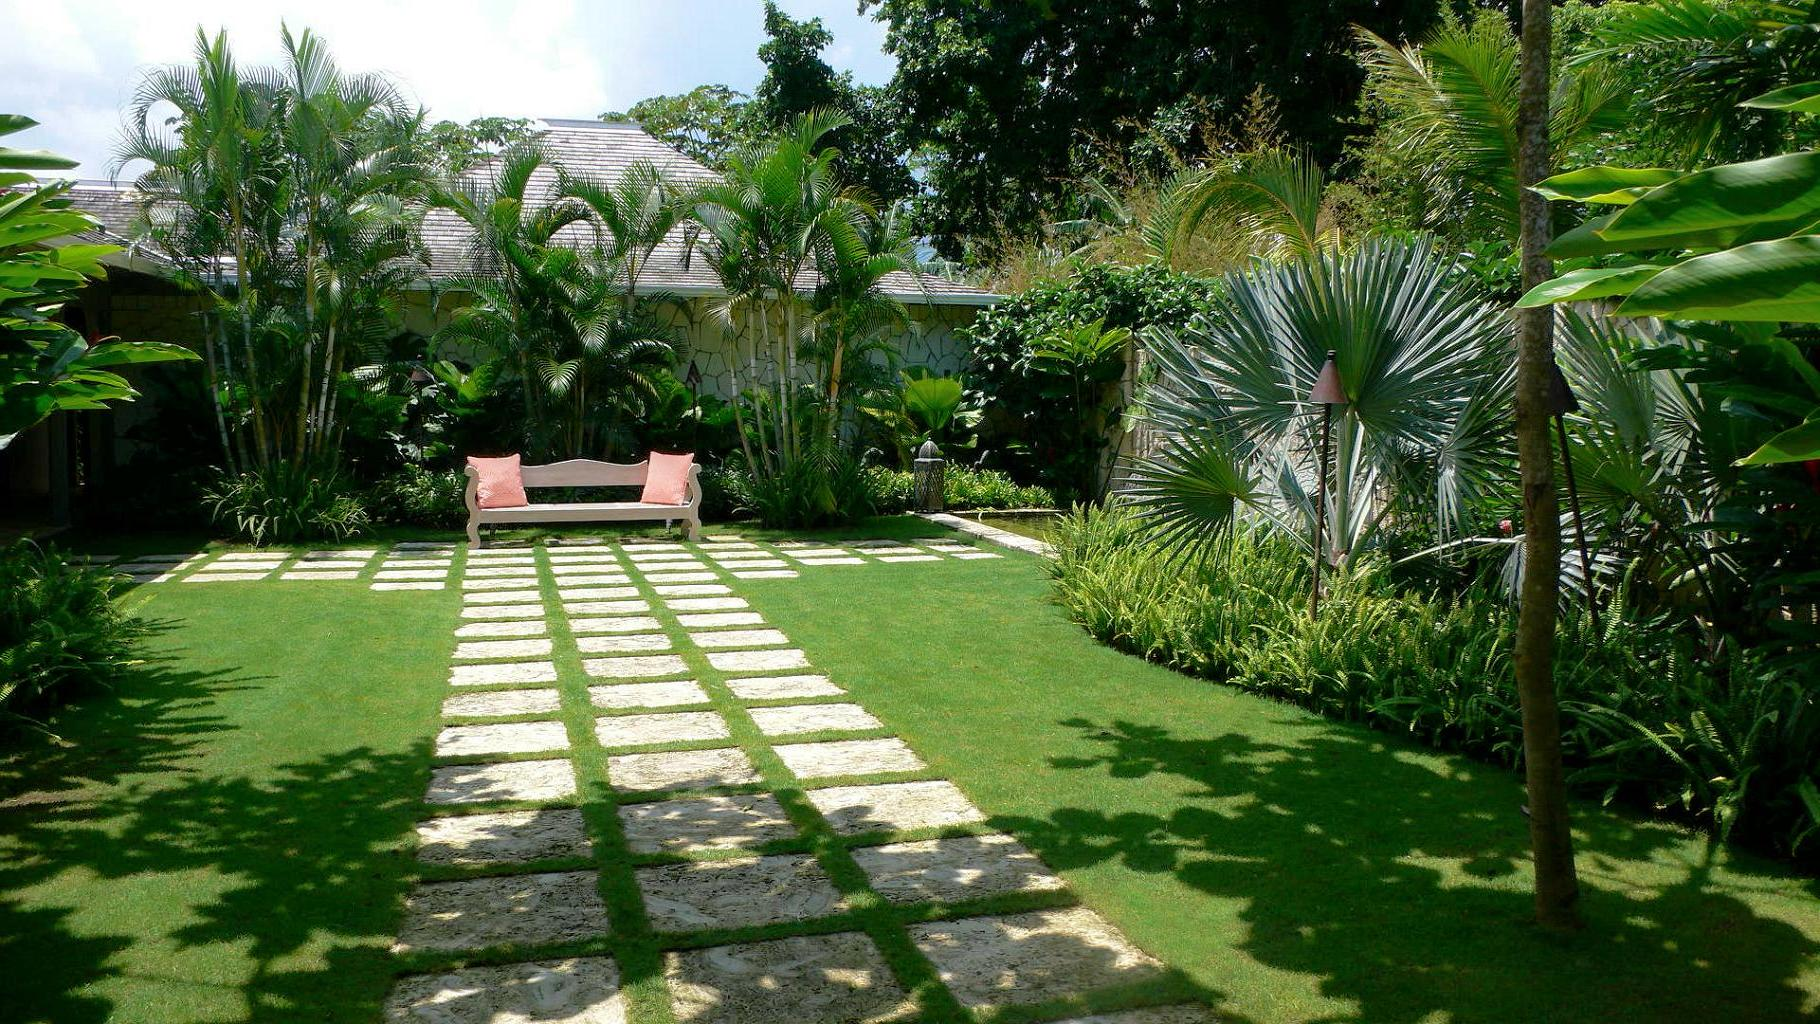 Tropical garden design landscaping in brisbane for Latest garden design ideas